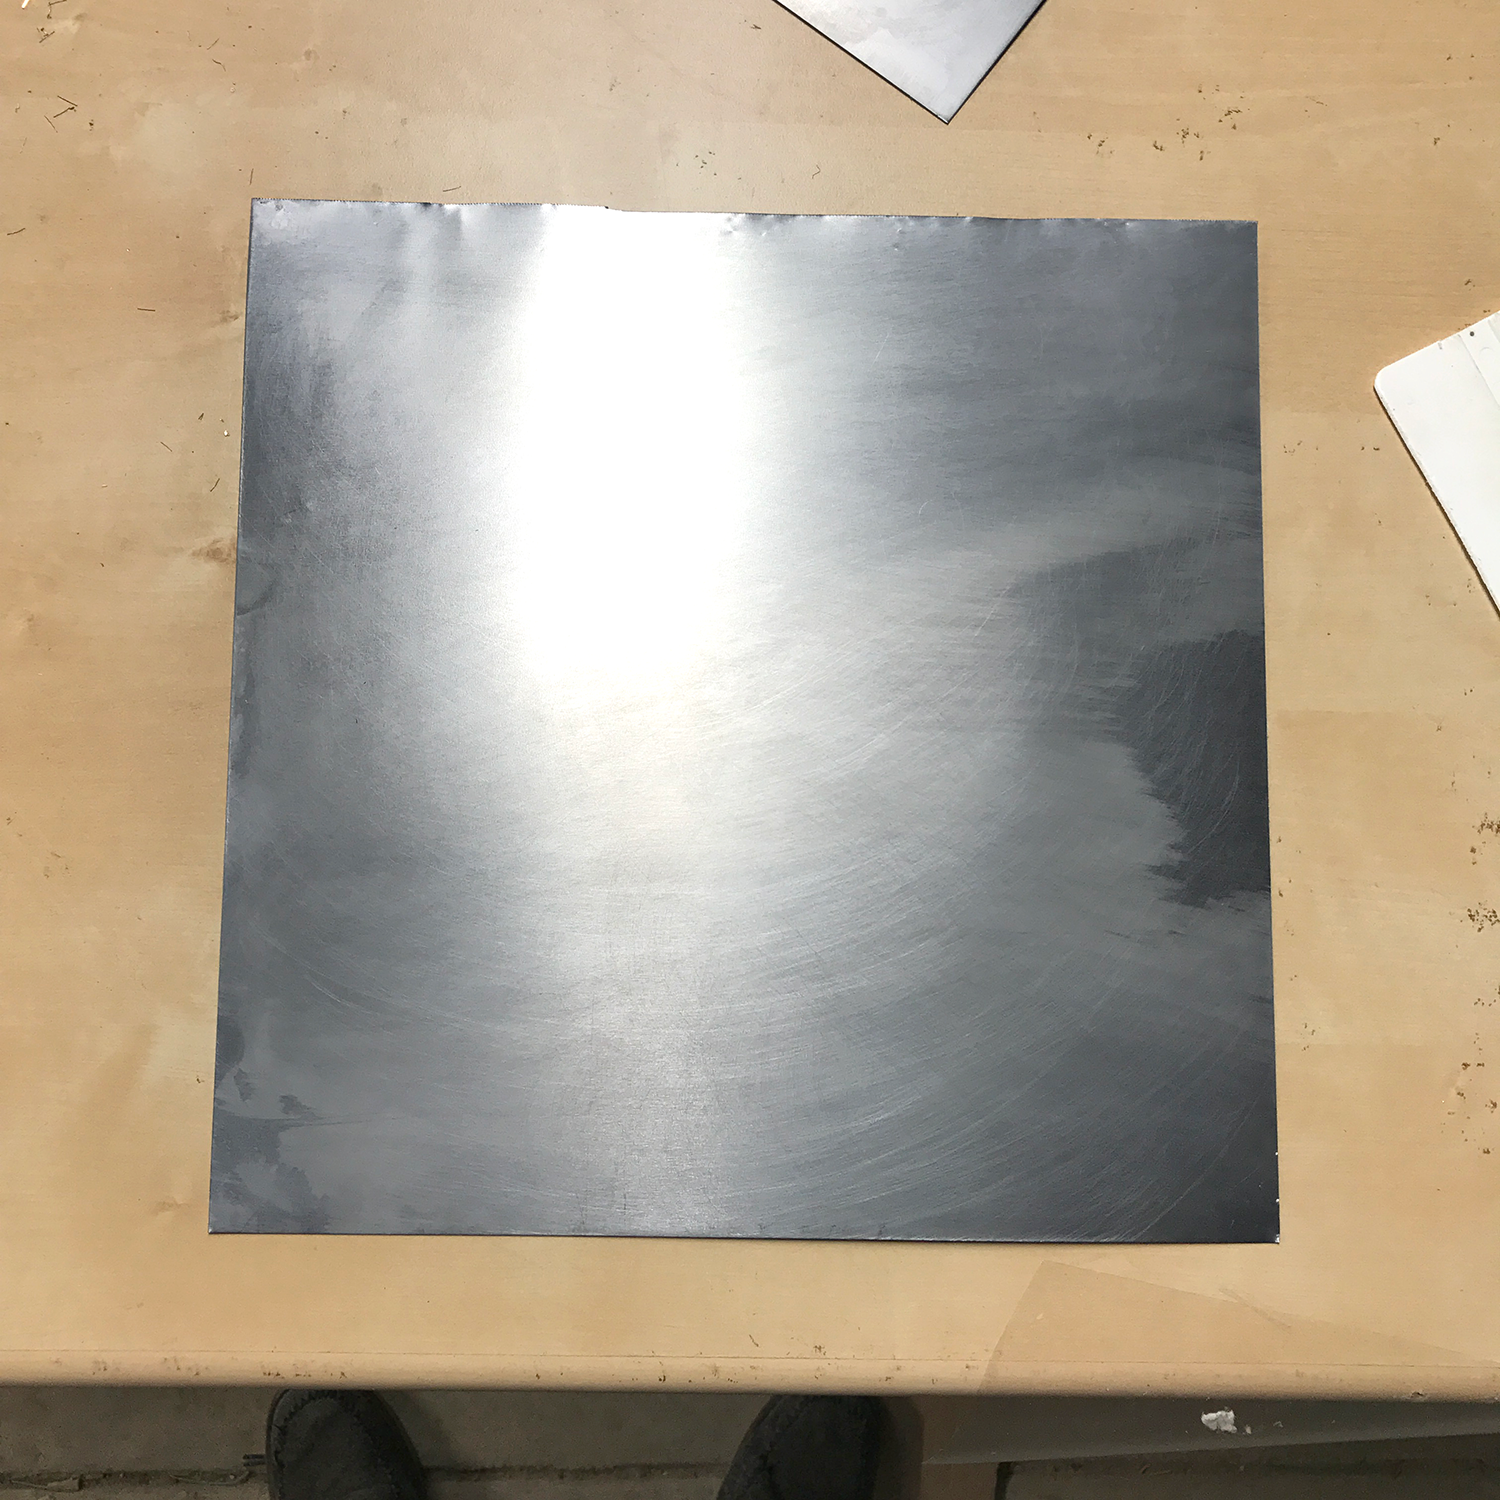 The sheet of metal